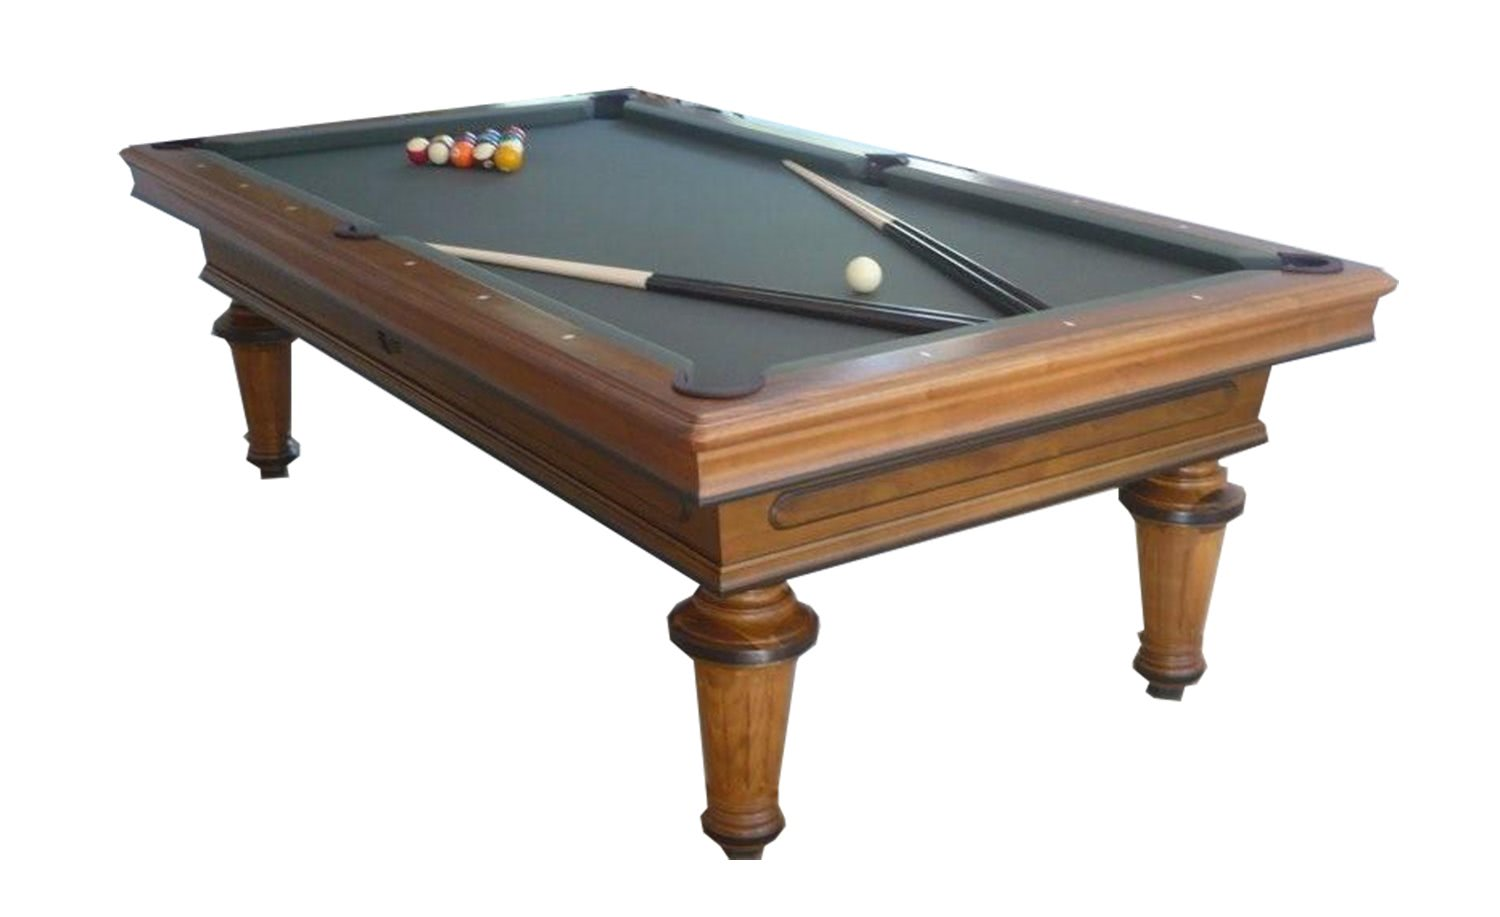 billard 8 pool table. Black Bedroom Furniture Sets. Home Design Ideas